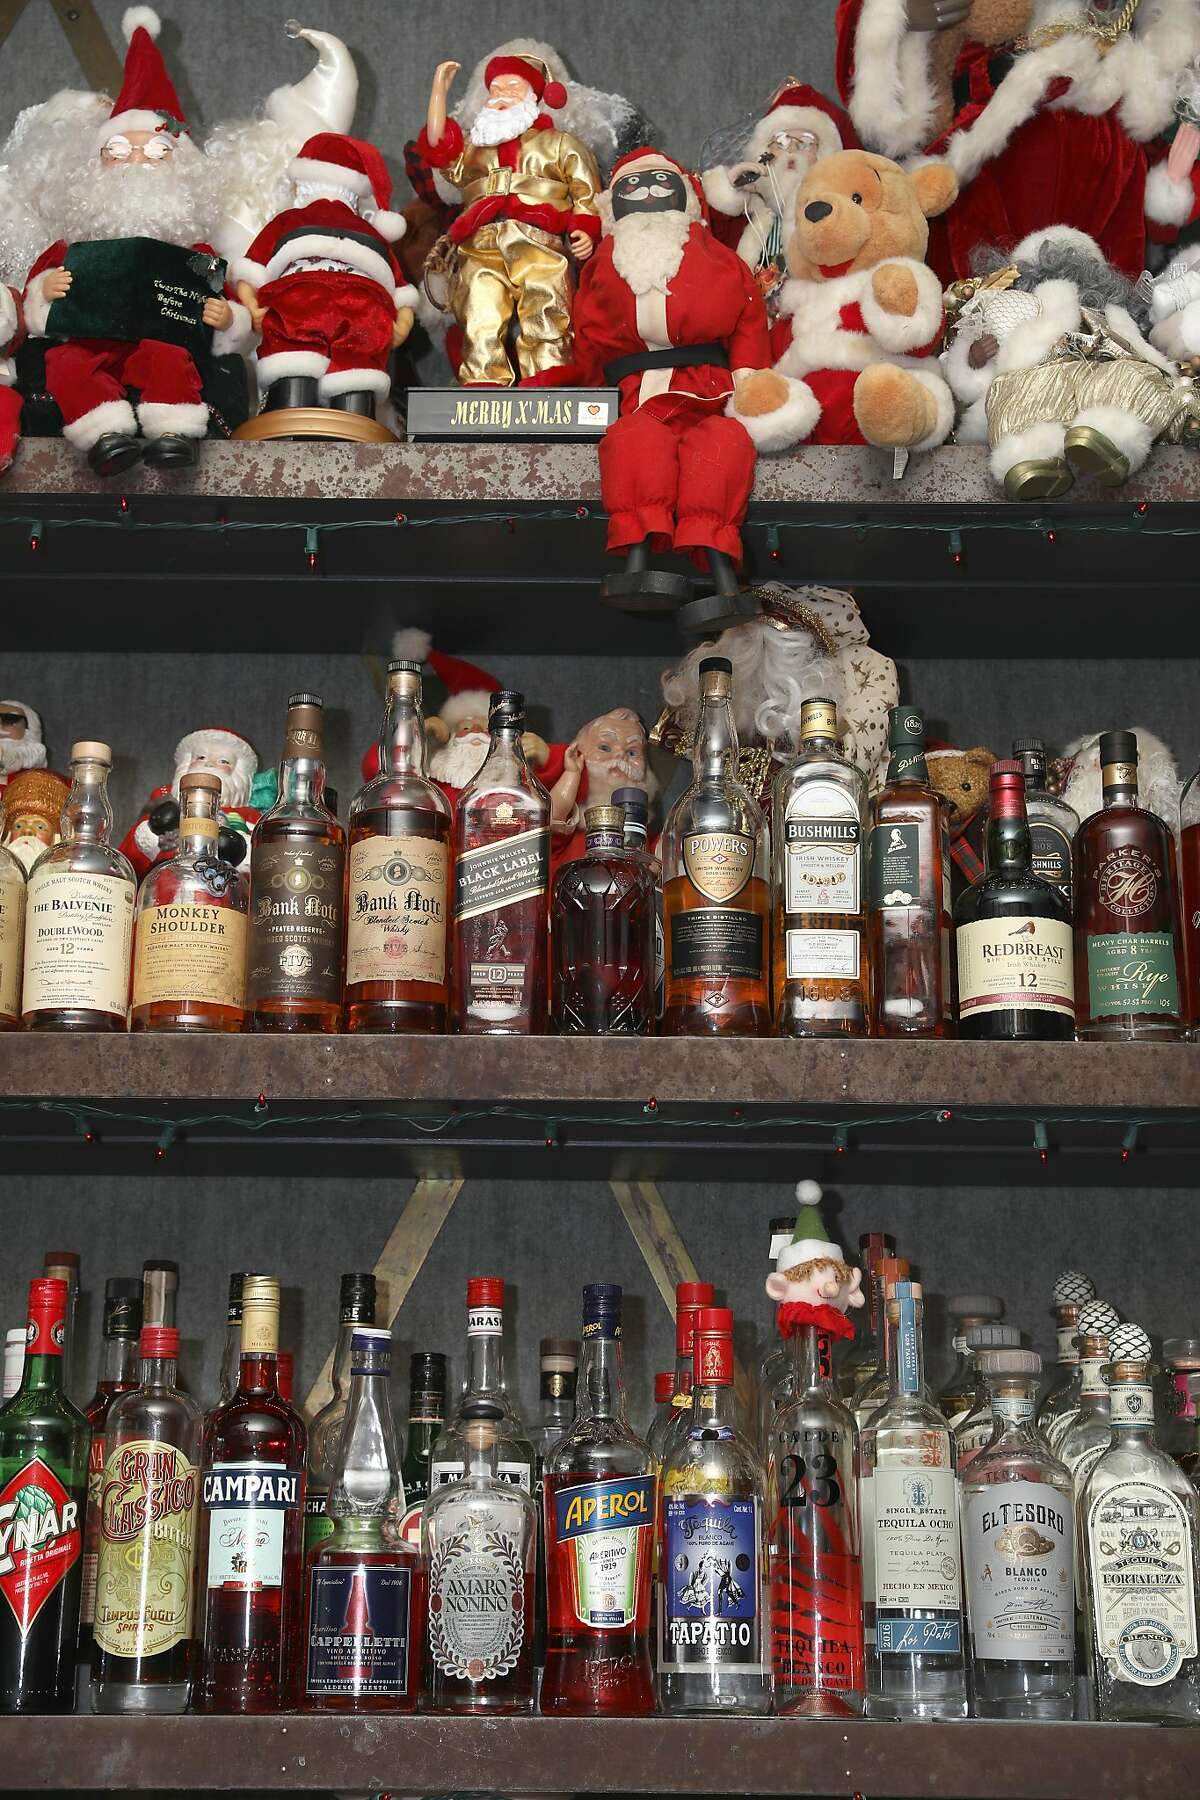 Famous drag queen Marlena who used to own this bar now named Brass Tacks in Hayes Valley talks about the Santas and Christmas decor surrounding the liquor bottles which she�s collected on Monday, Dec. 9, 2019, in San Francisco, Calif.